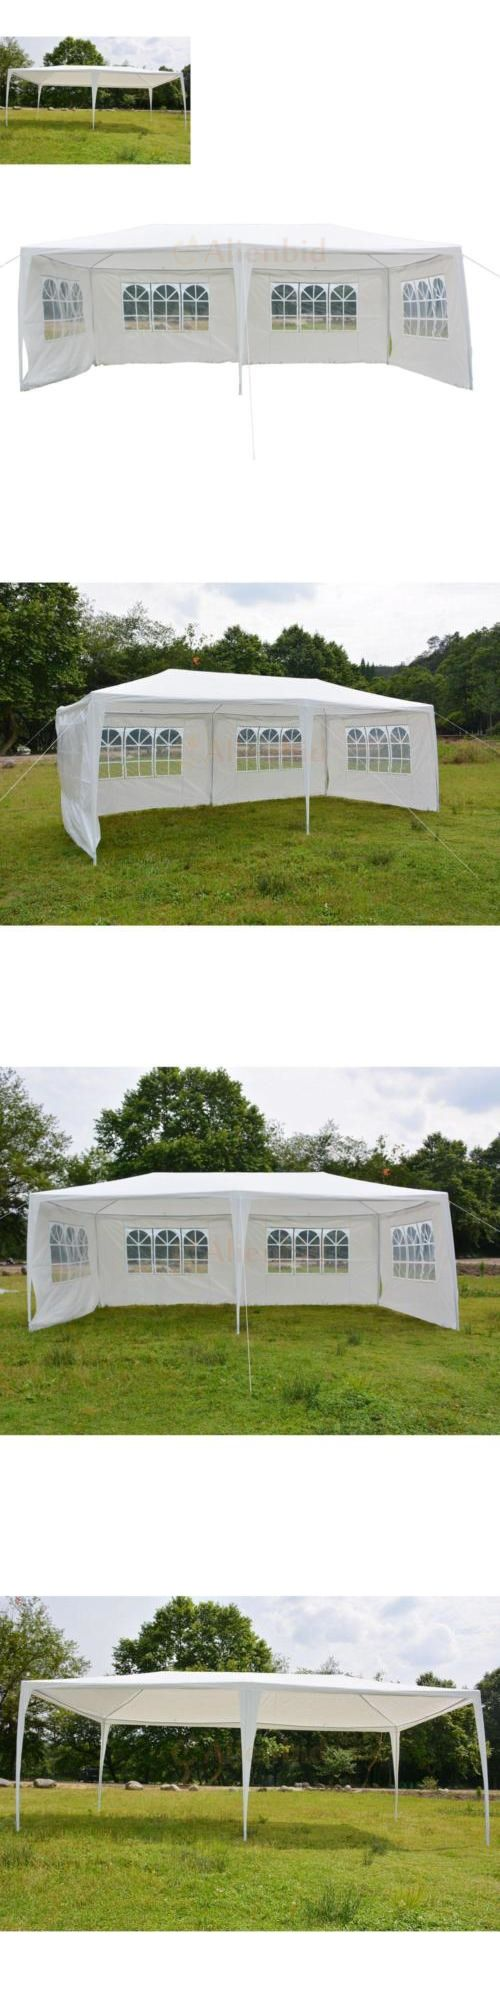 Marquees and Tents 180994: 10 X 20 4 Sidewalls Party Tent Heavy Duty Gazebo Wedding Canopy Outdoor -> BUY IT NOW ONLY: $63.99 on eBay!